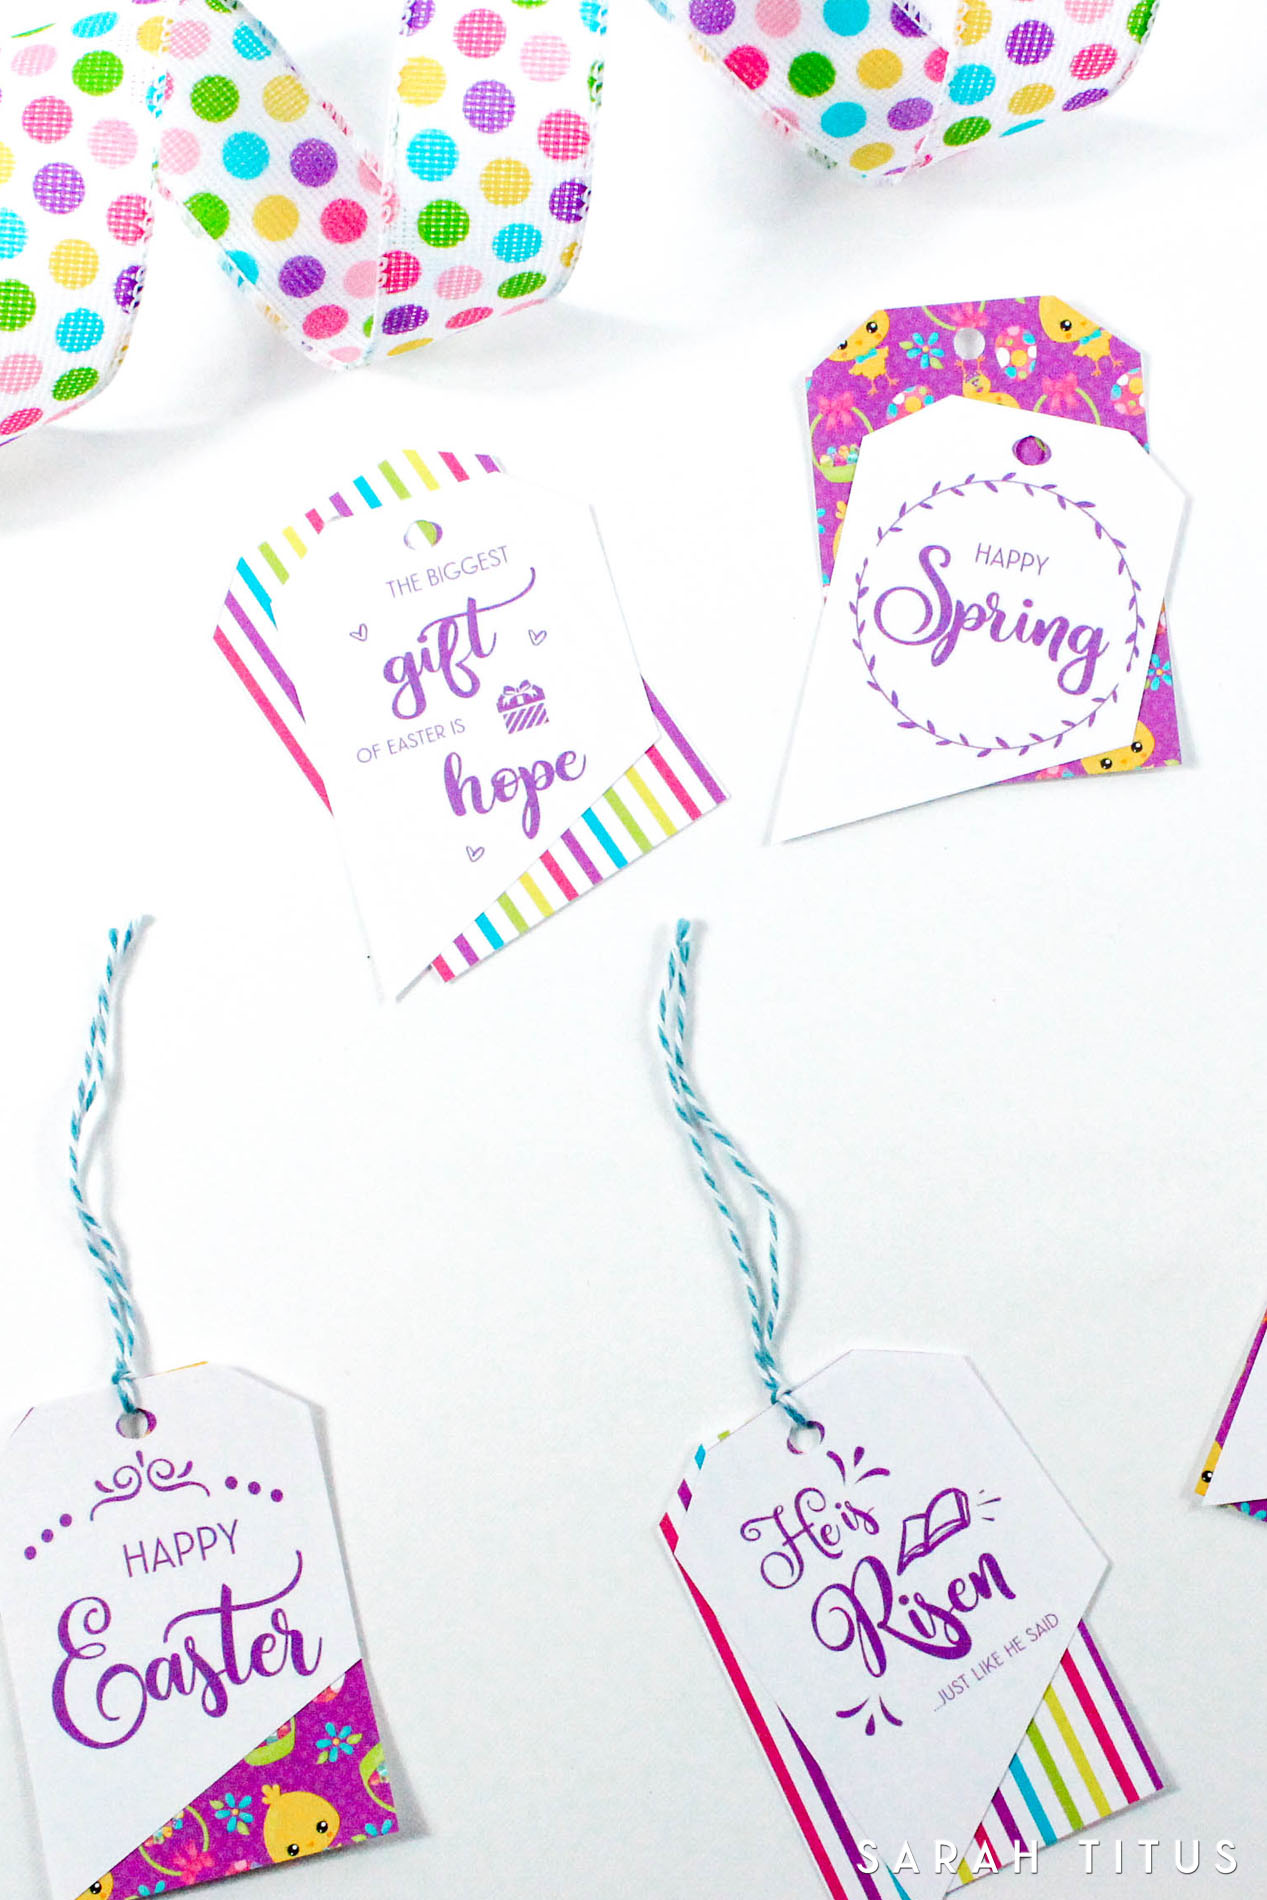 graphic regarding Free Printable Easter Cards Religious named Absolutely free Printable Easter Present Tags - Sarah Titus